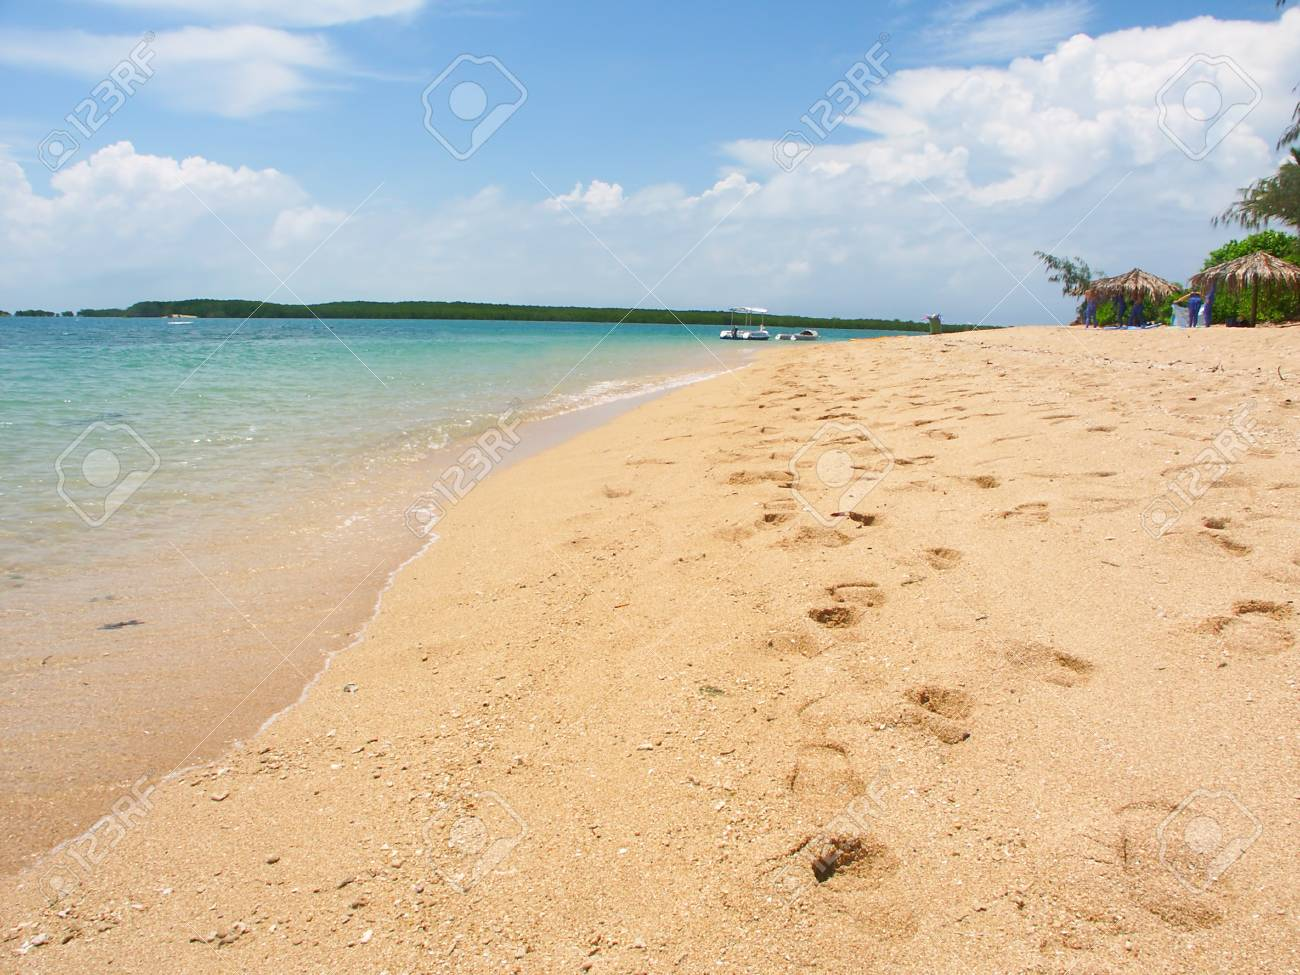 Tropical beach on the Low Isles in beautiful Queensland, Australia Stock Photo - 10359359